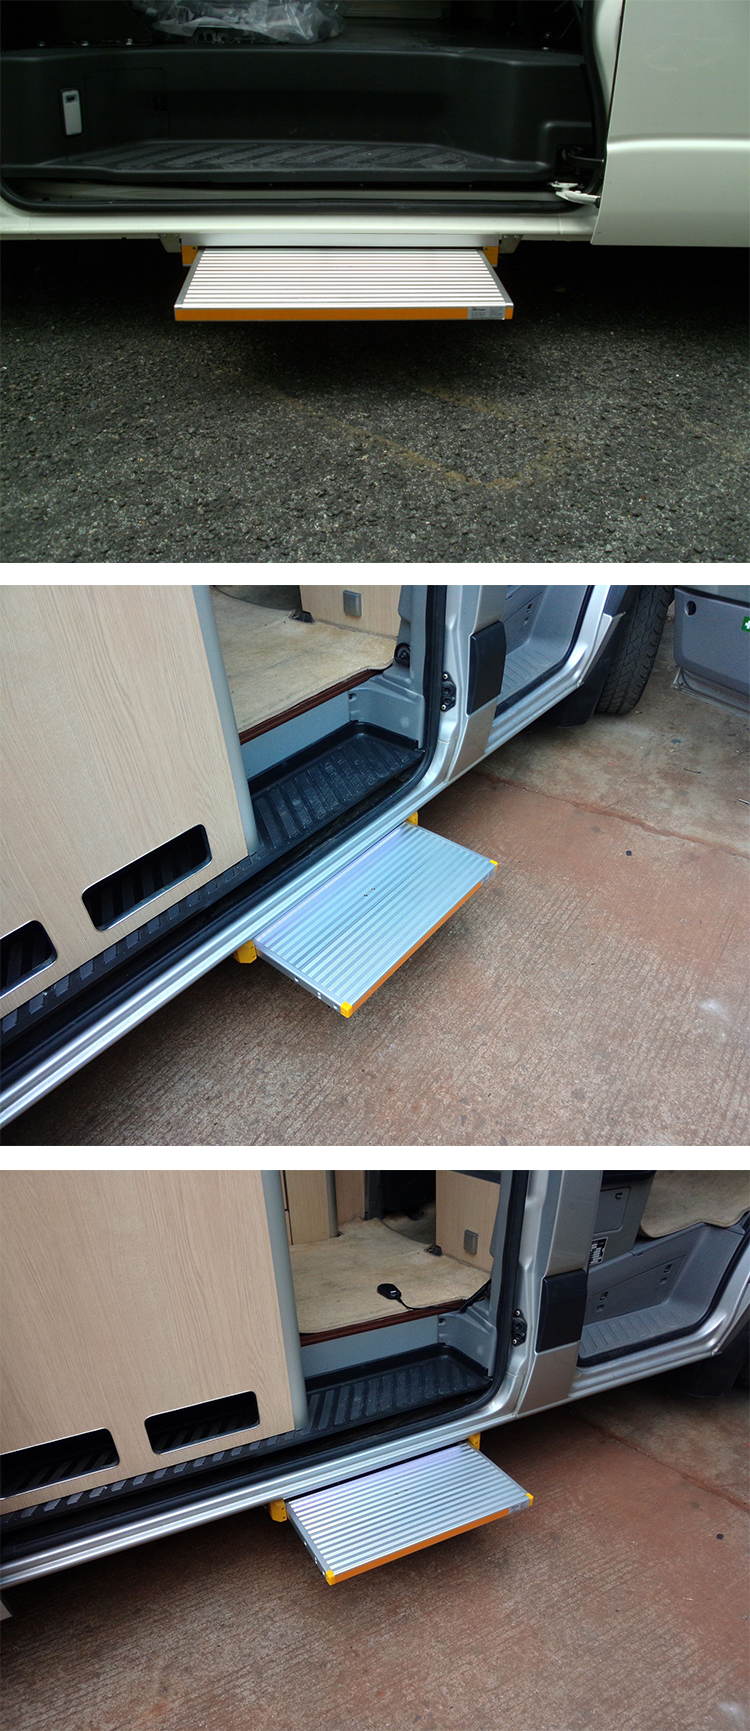 12V/24V Universal Aluminum Electric Sliding Step for vans and vehicle